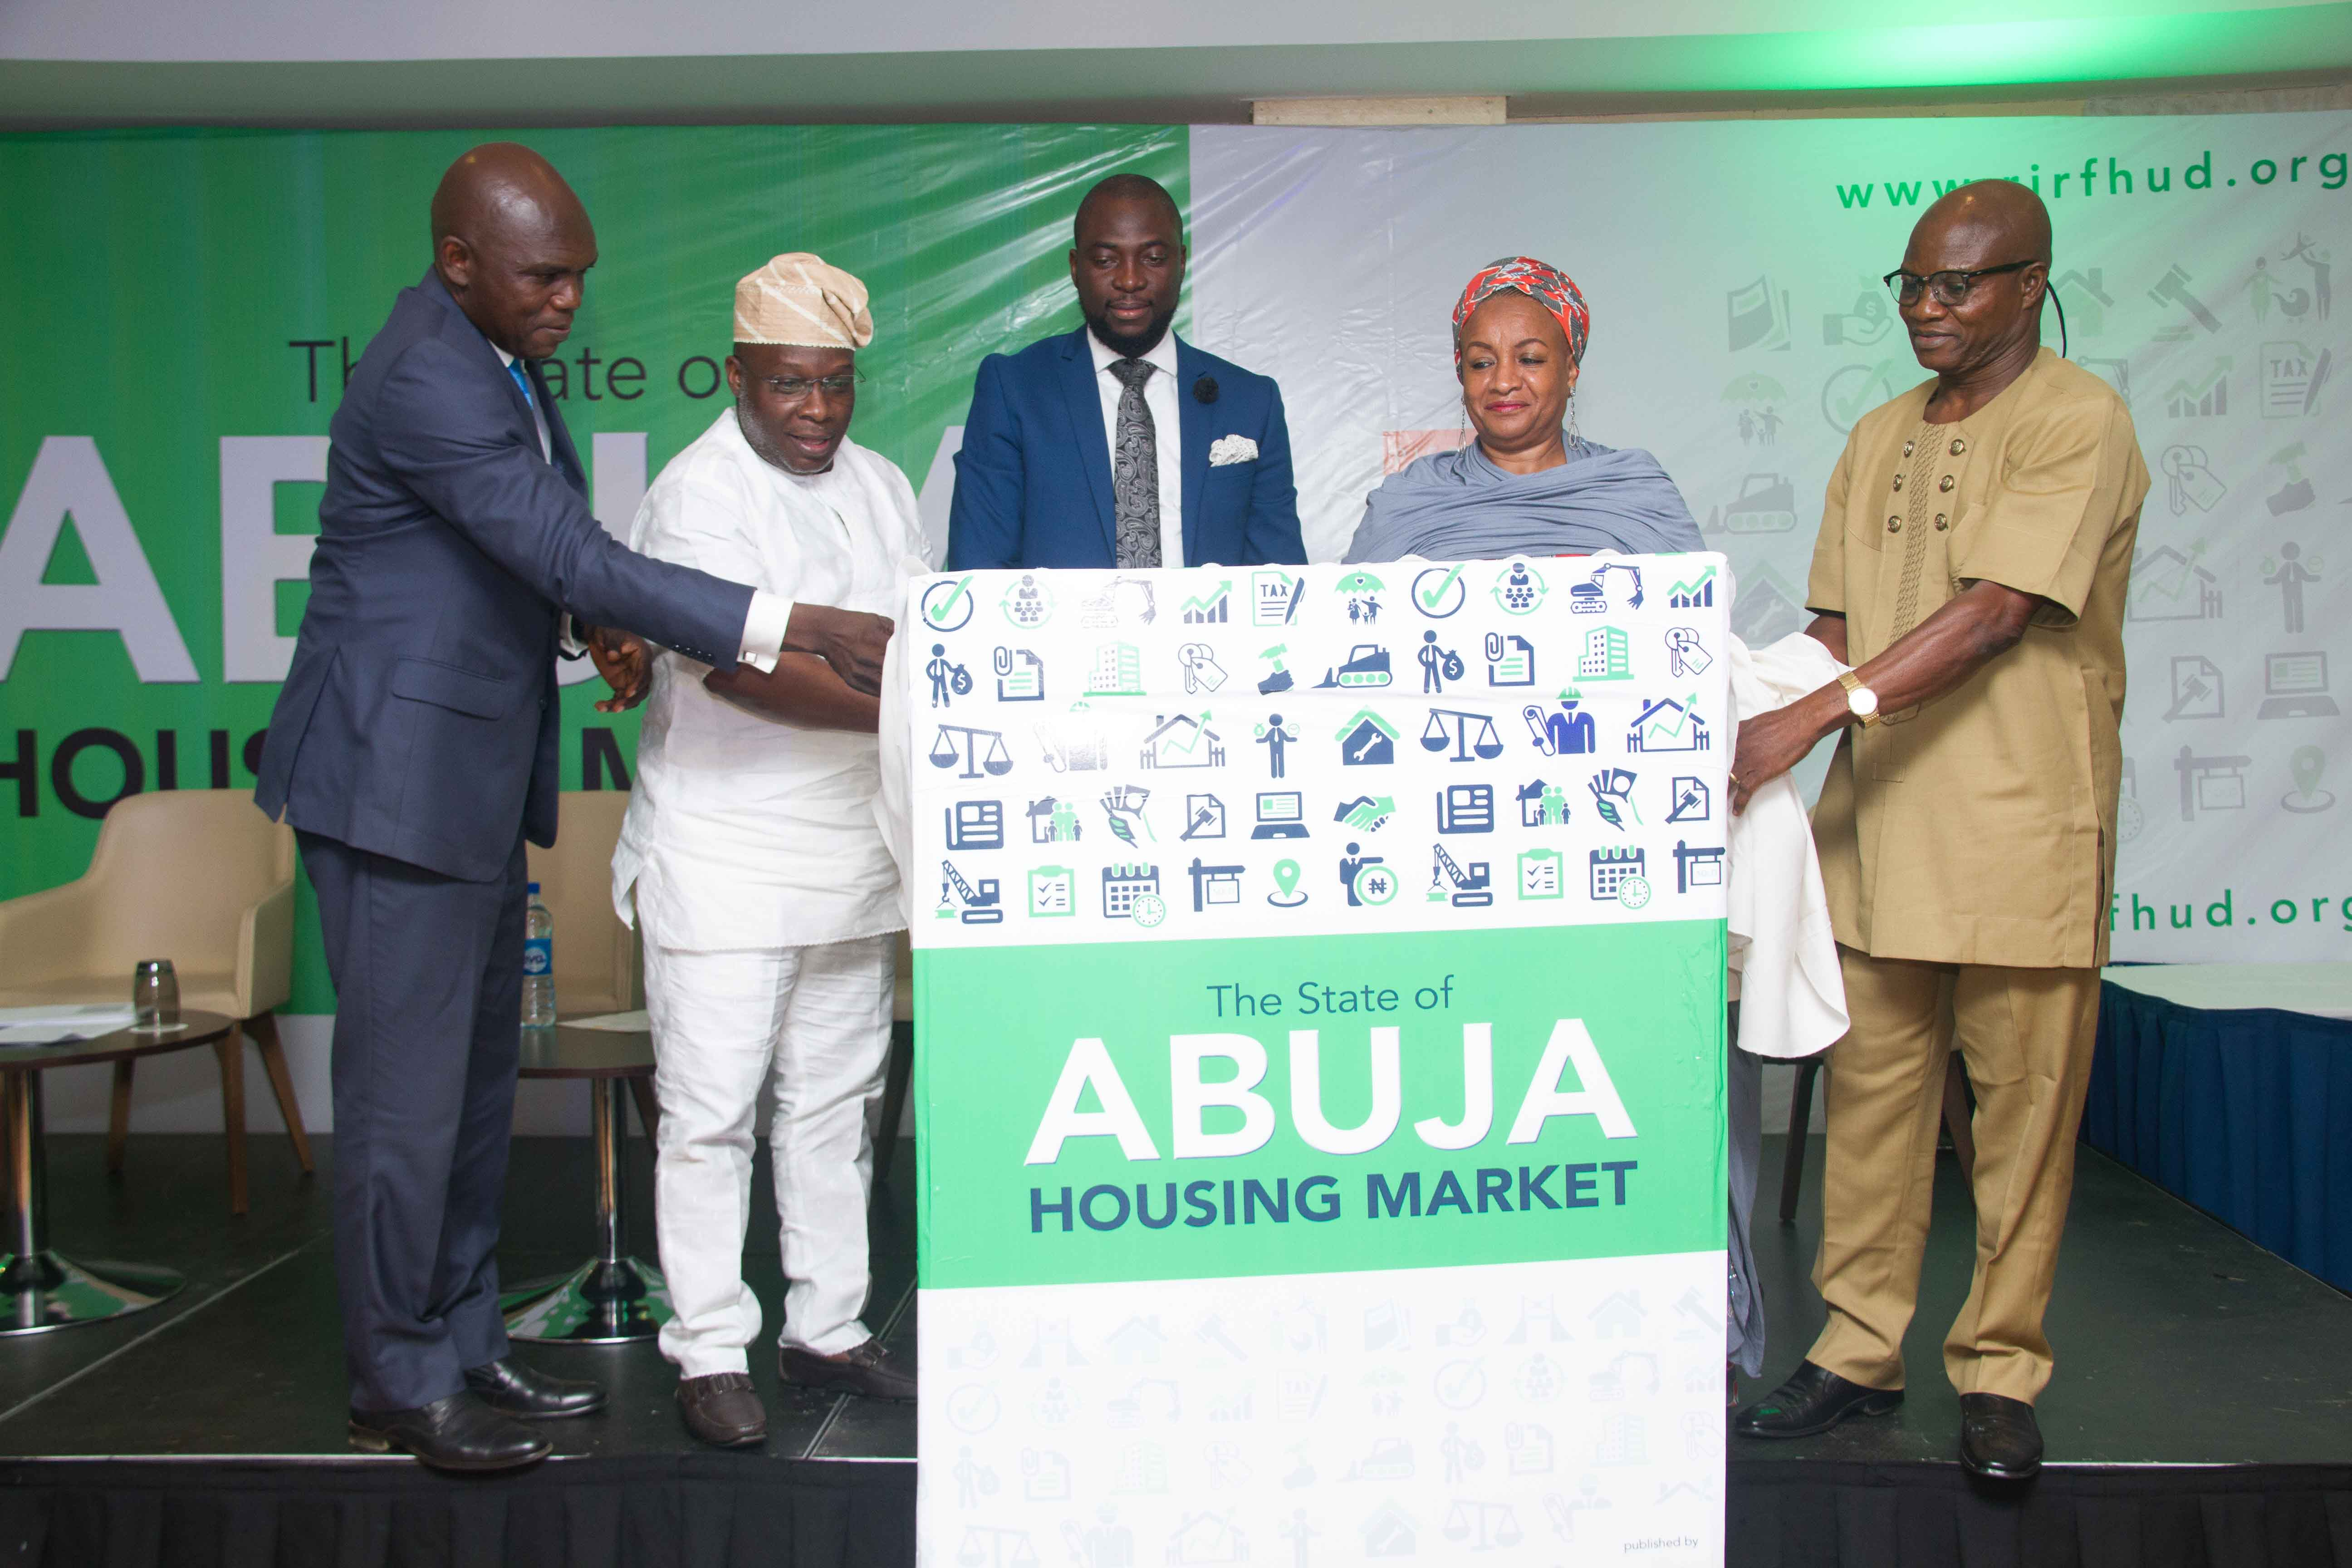 The State of Abuja Housing Market Report